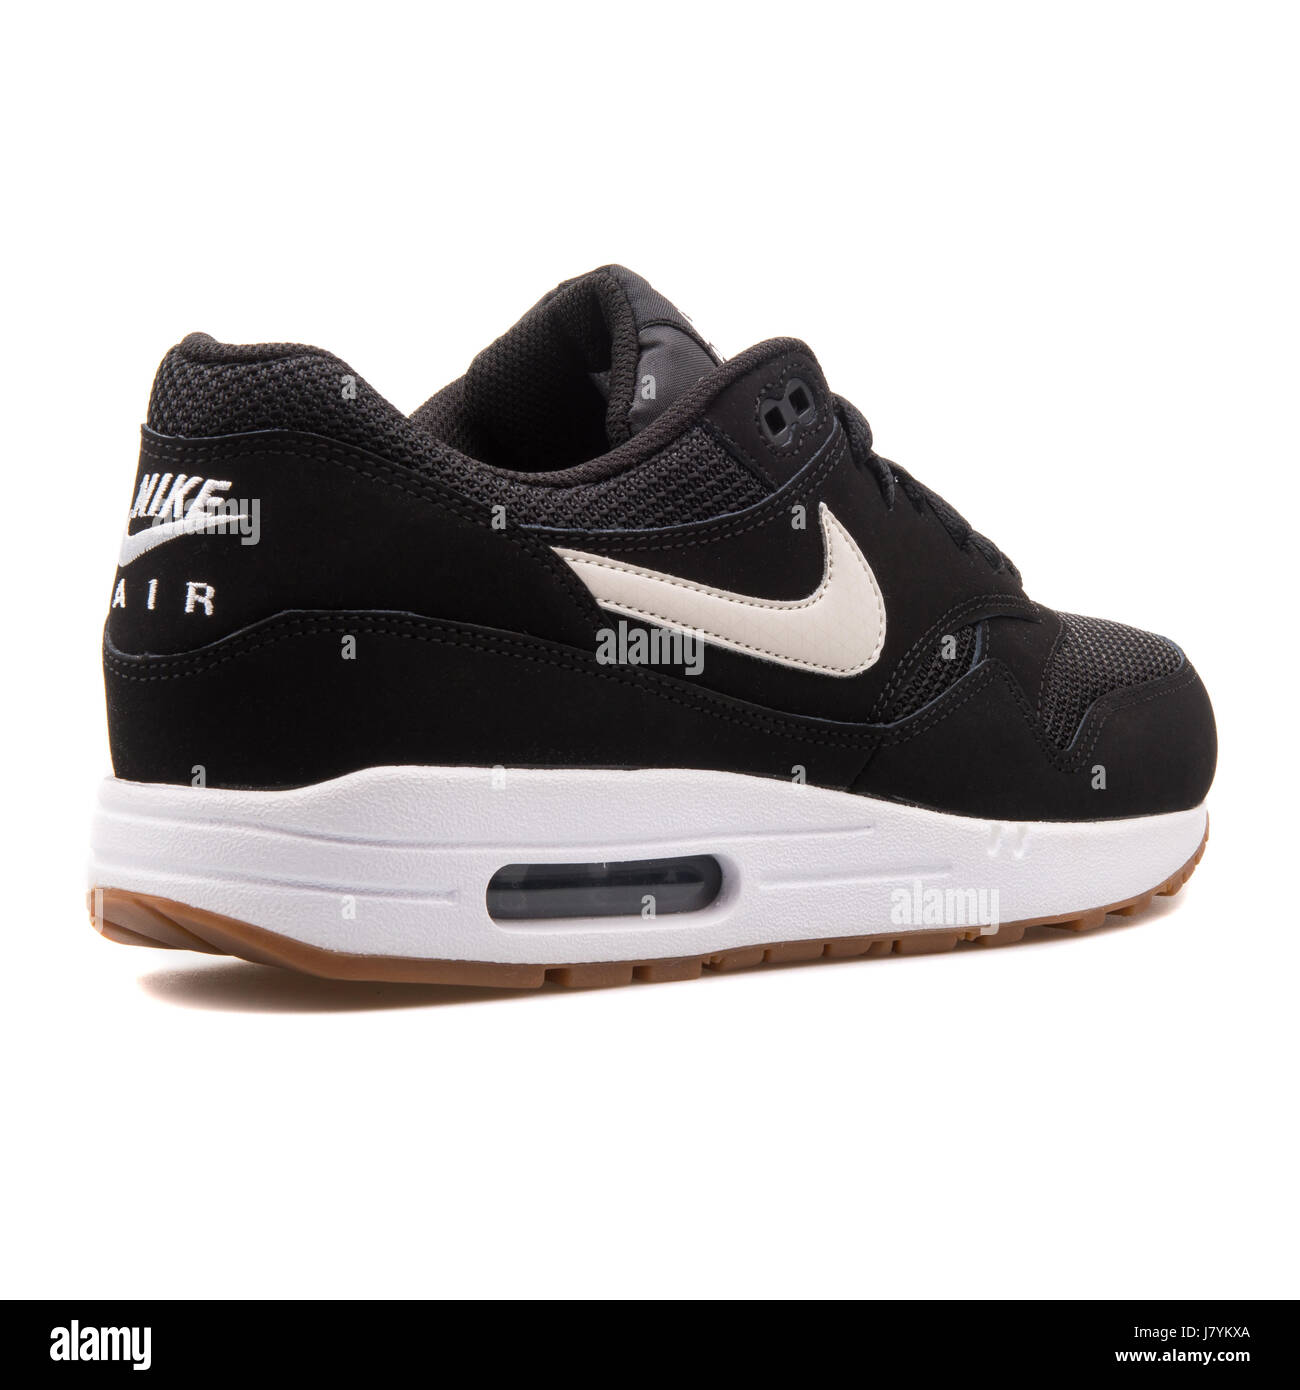 485814c7 Nike Air Max 1 Essential Men's Black Sports Sneakers - 537383-026 ...